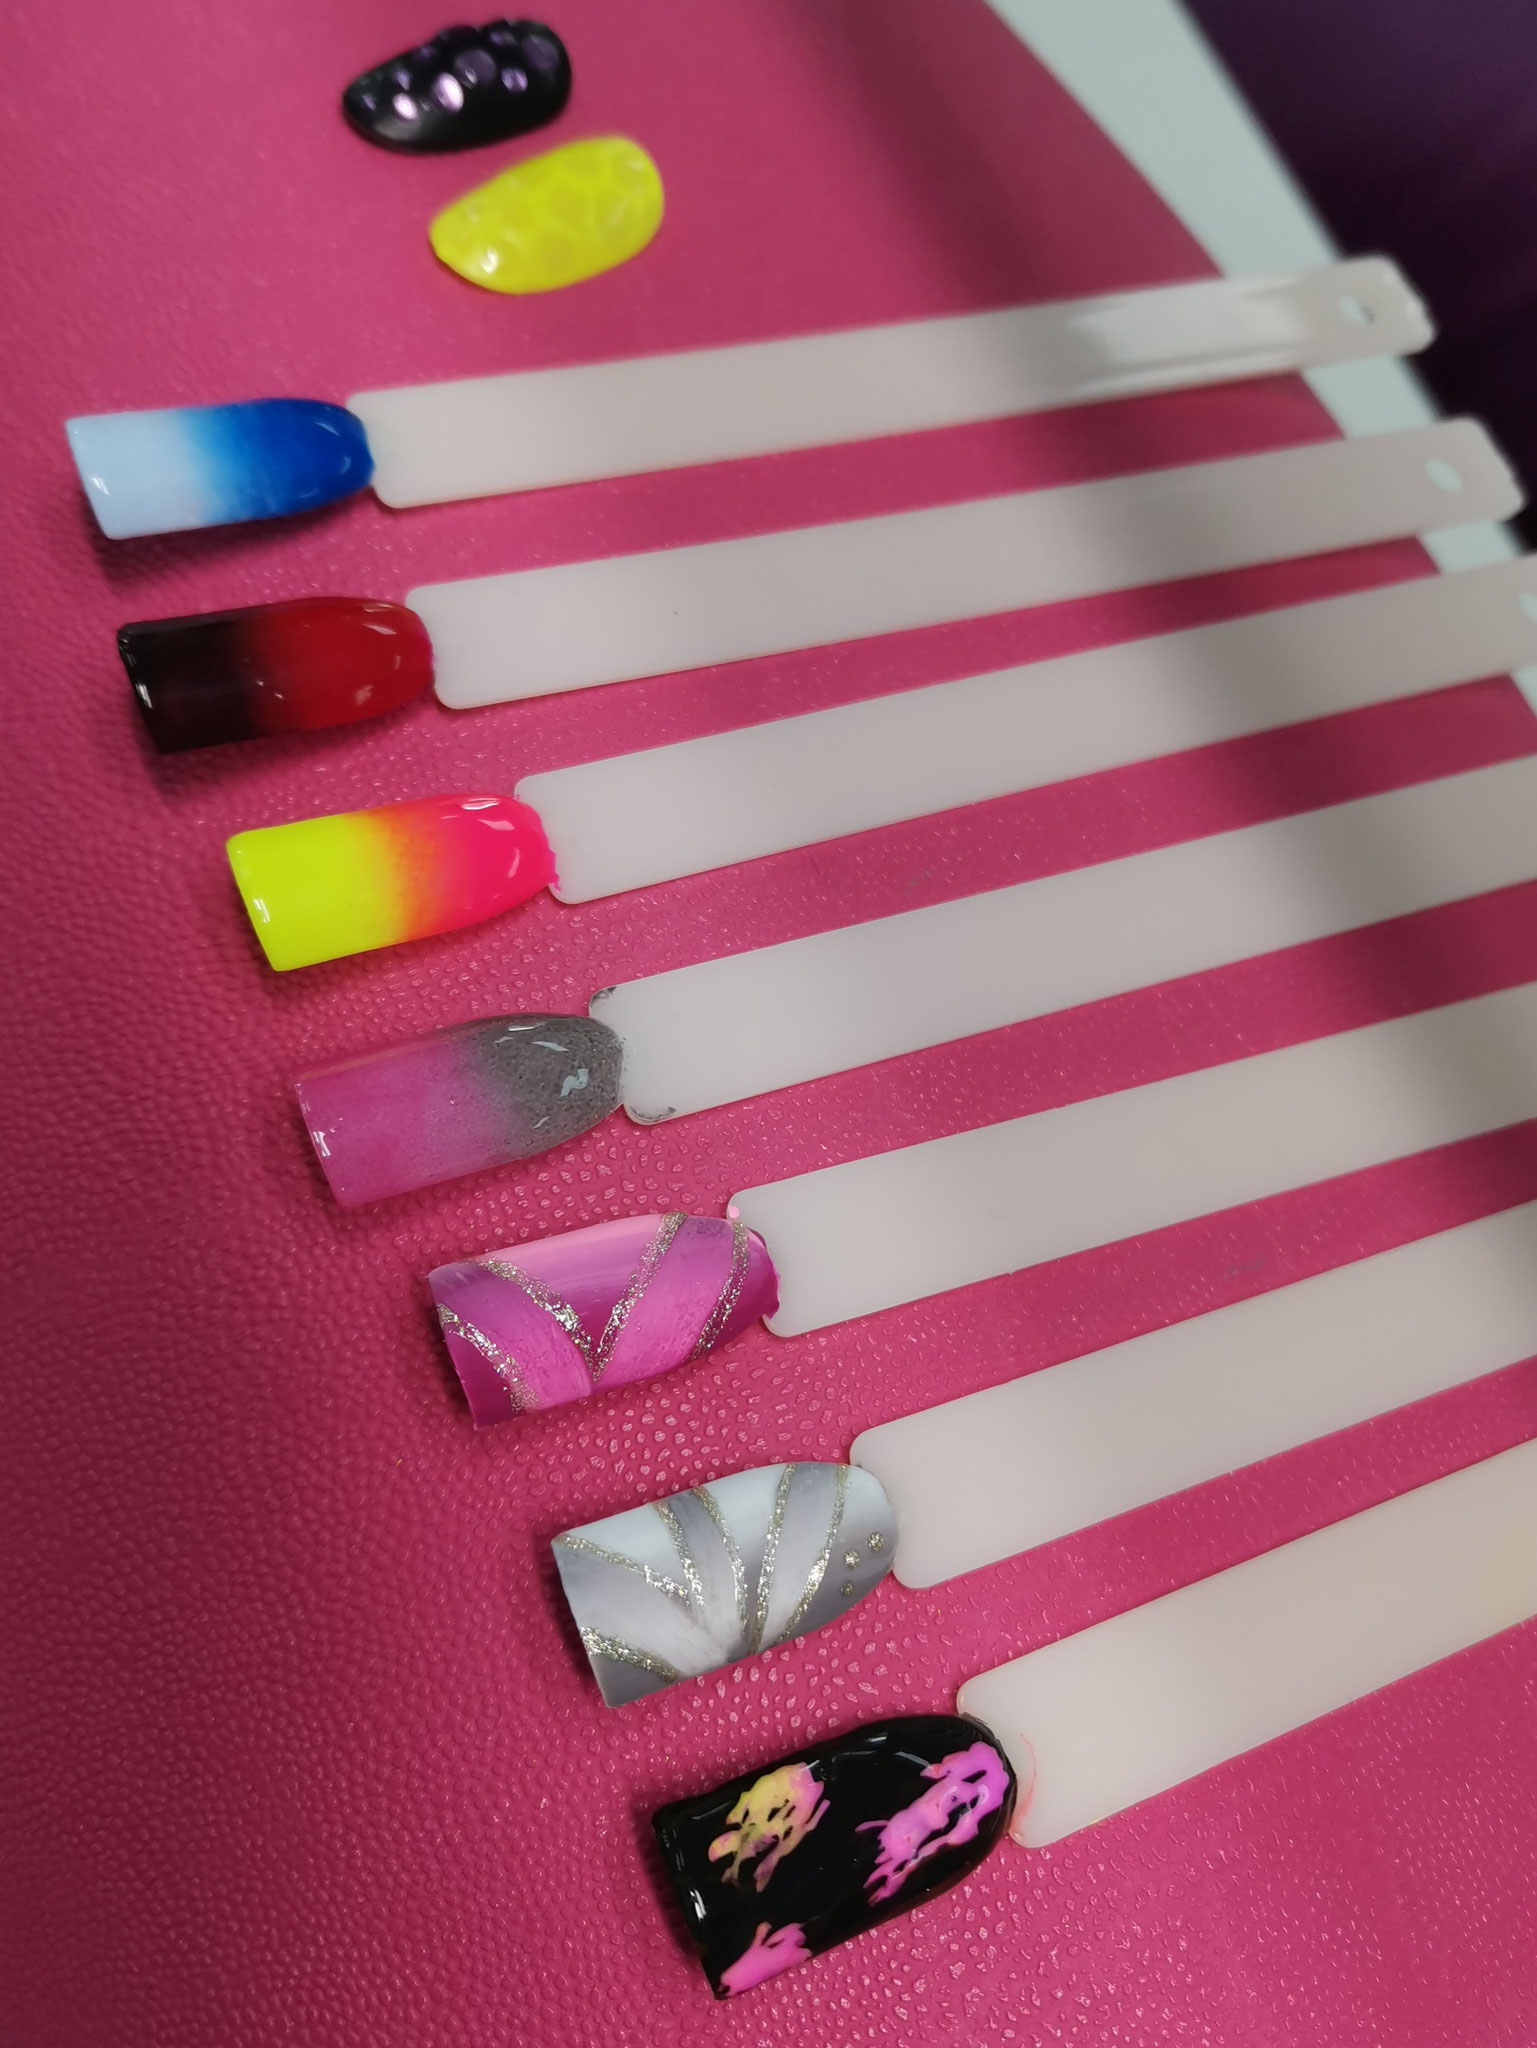 NailArt Mix Media Stamping Schulung in der NailsAcademy in Neu Leopoldau in Wien 21